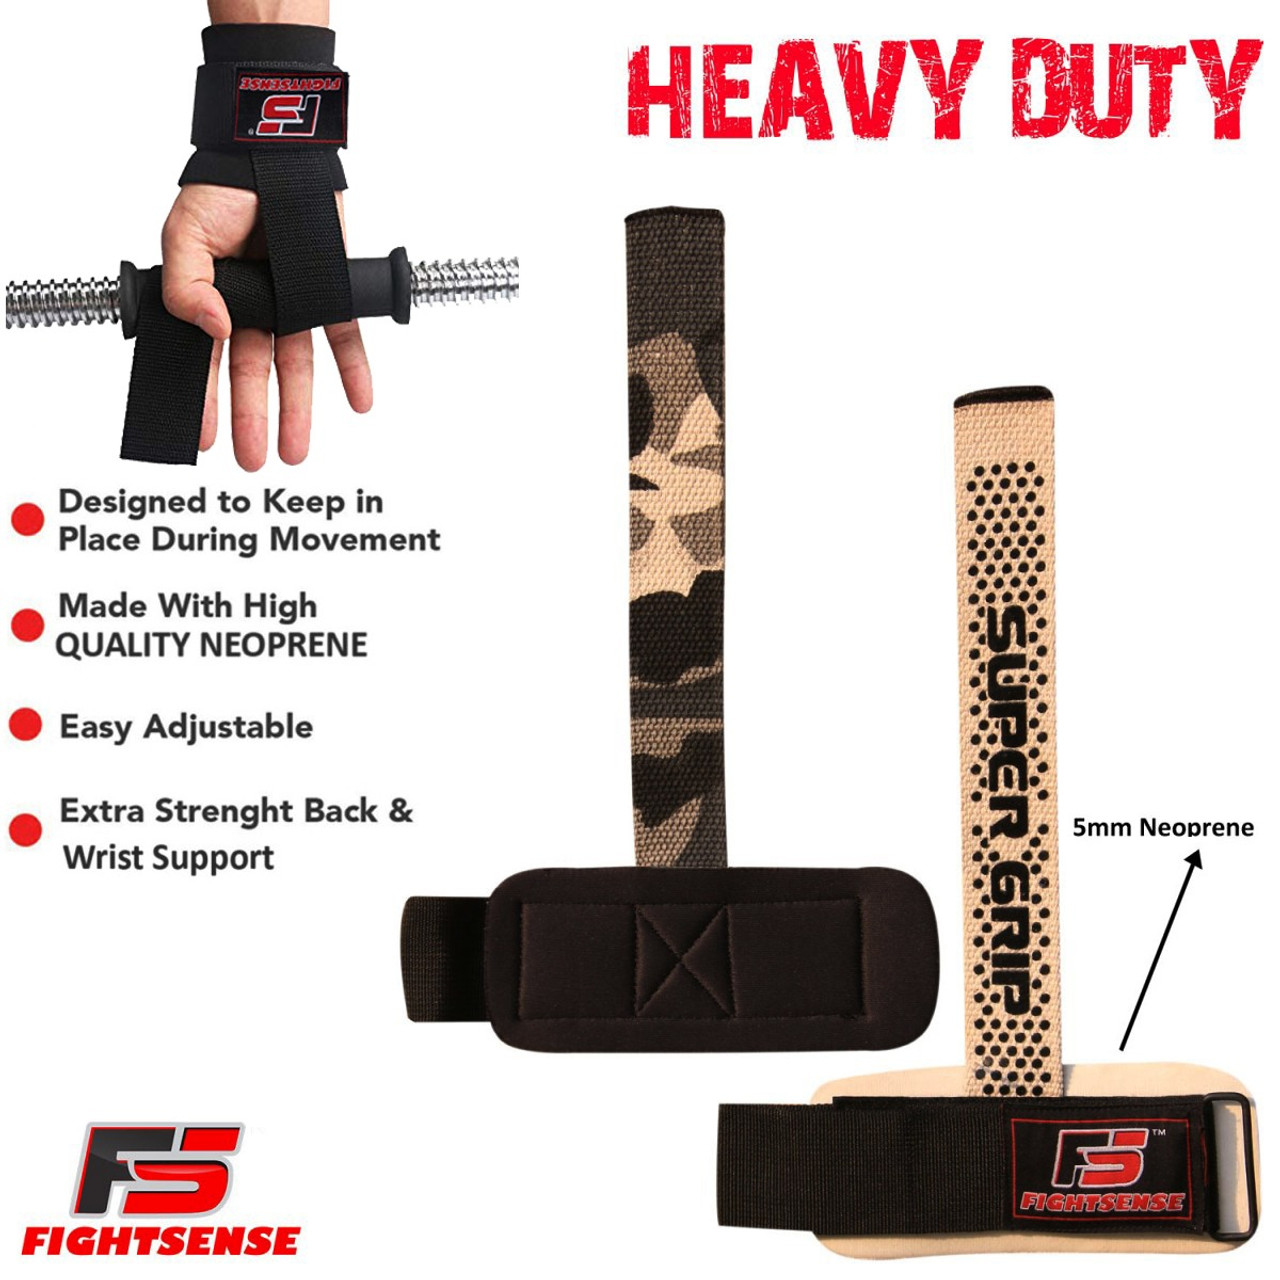 FITNESS PADDED WEIGHT LIFITNG TRAINING BODY BUILDING GYM LONG WRIST STRAP GLOVES